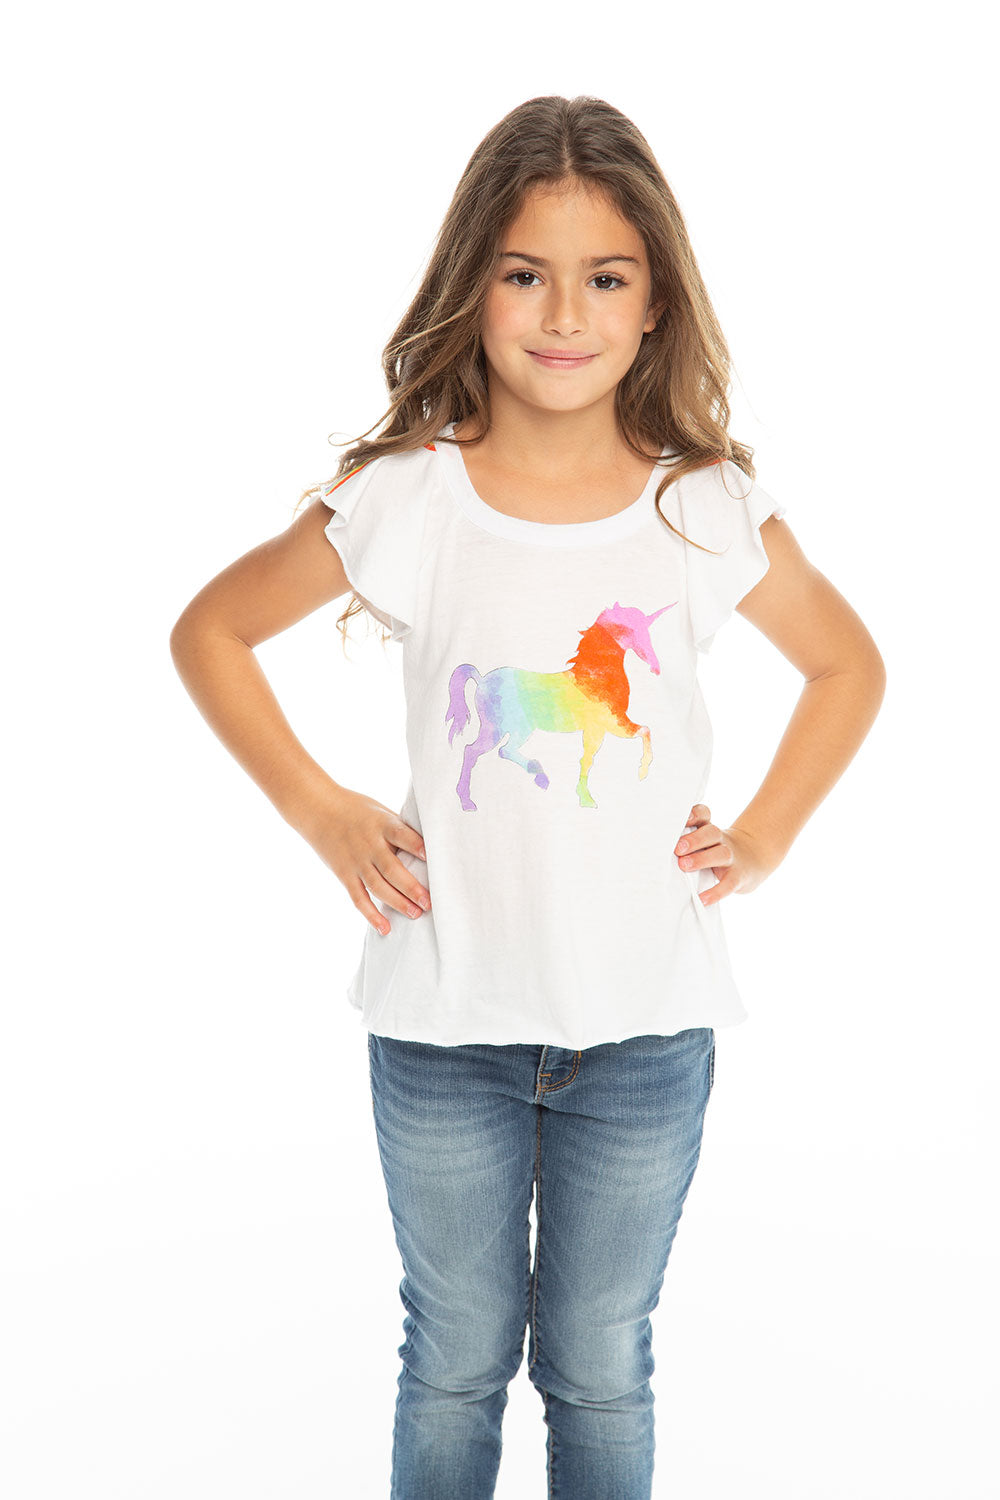 Rainbow Unicorn Girls chaserbrand4.myshopify.com